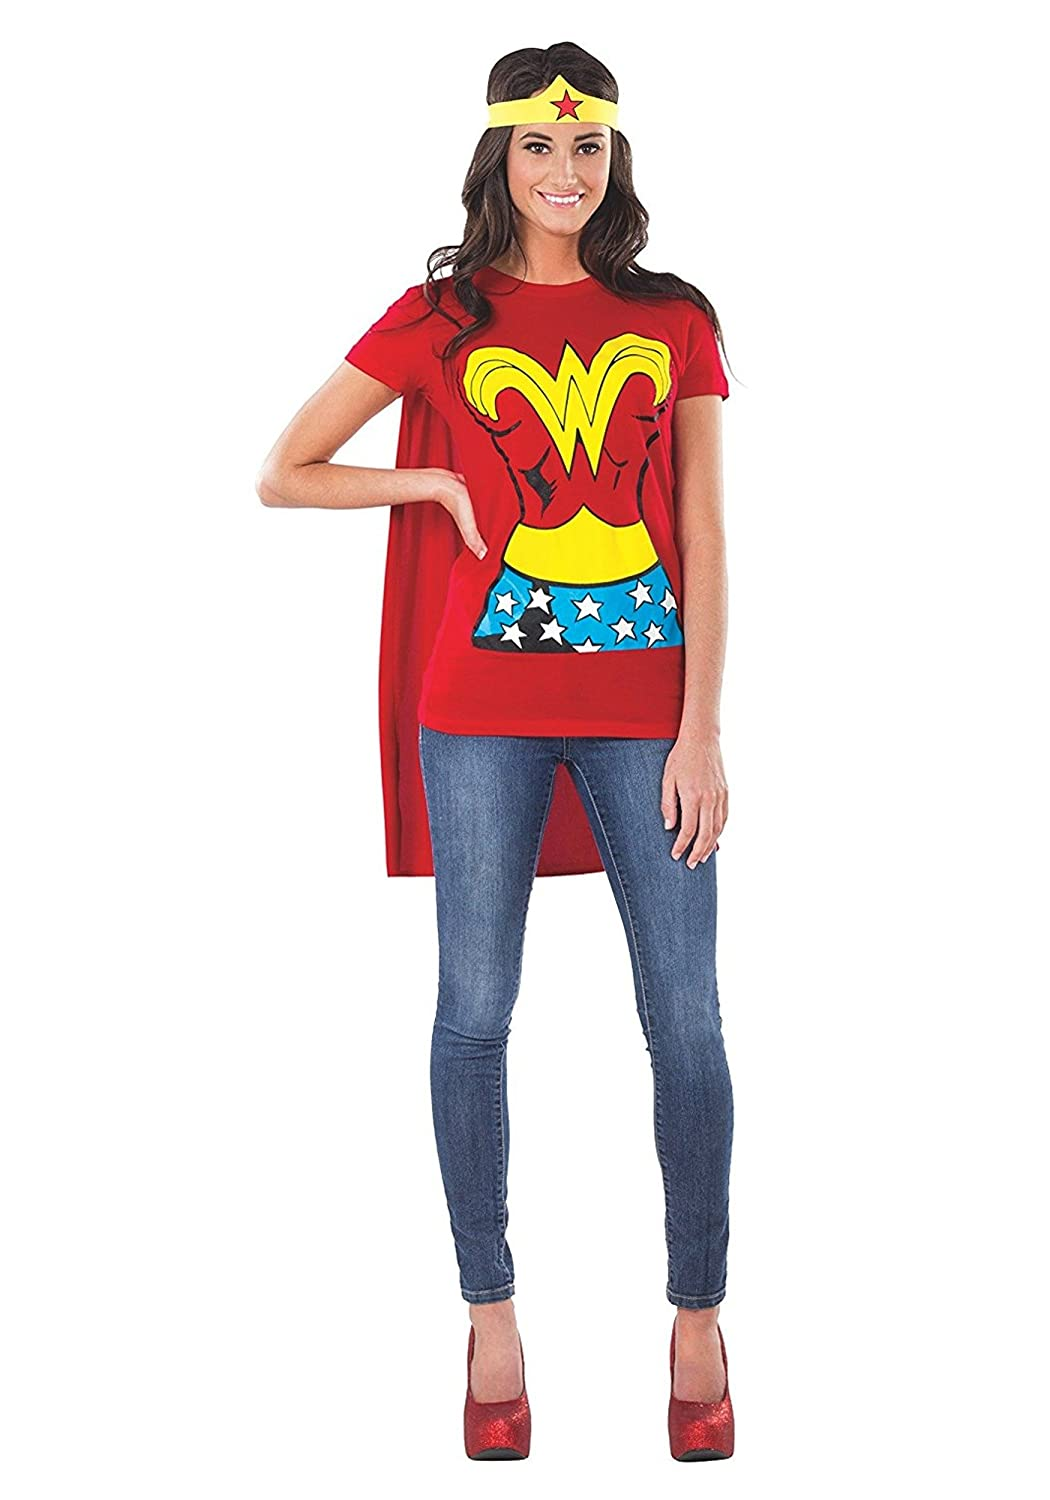 DC Comics Wonder Woman T-Shirt With Cape And Headband Costume Rubies Costumes - Apparel